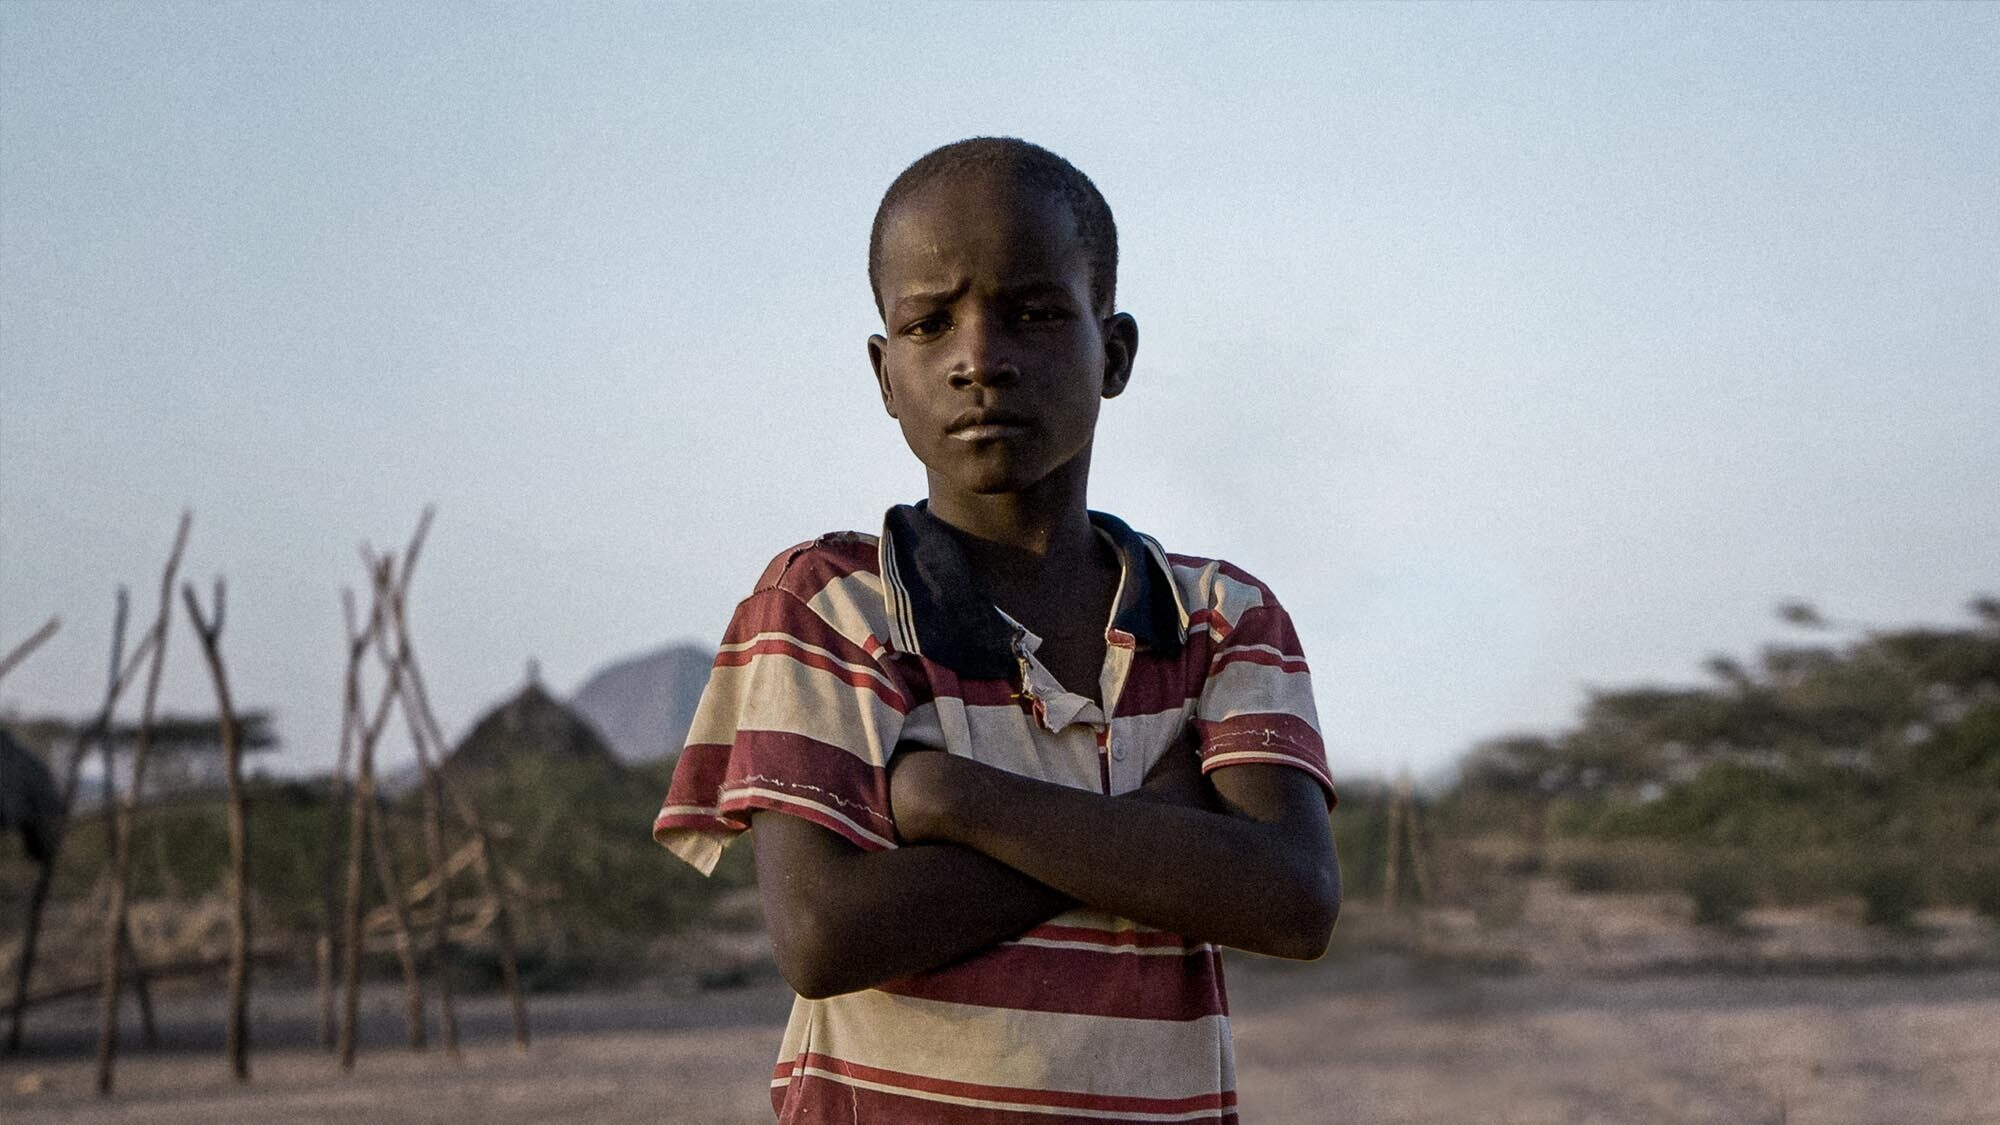 Boy from Save the Children's 2019 DRTV campaign